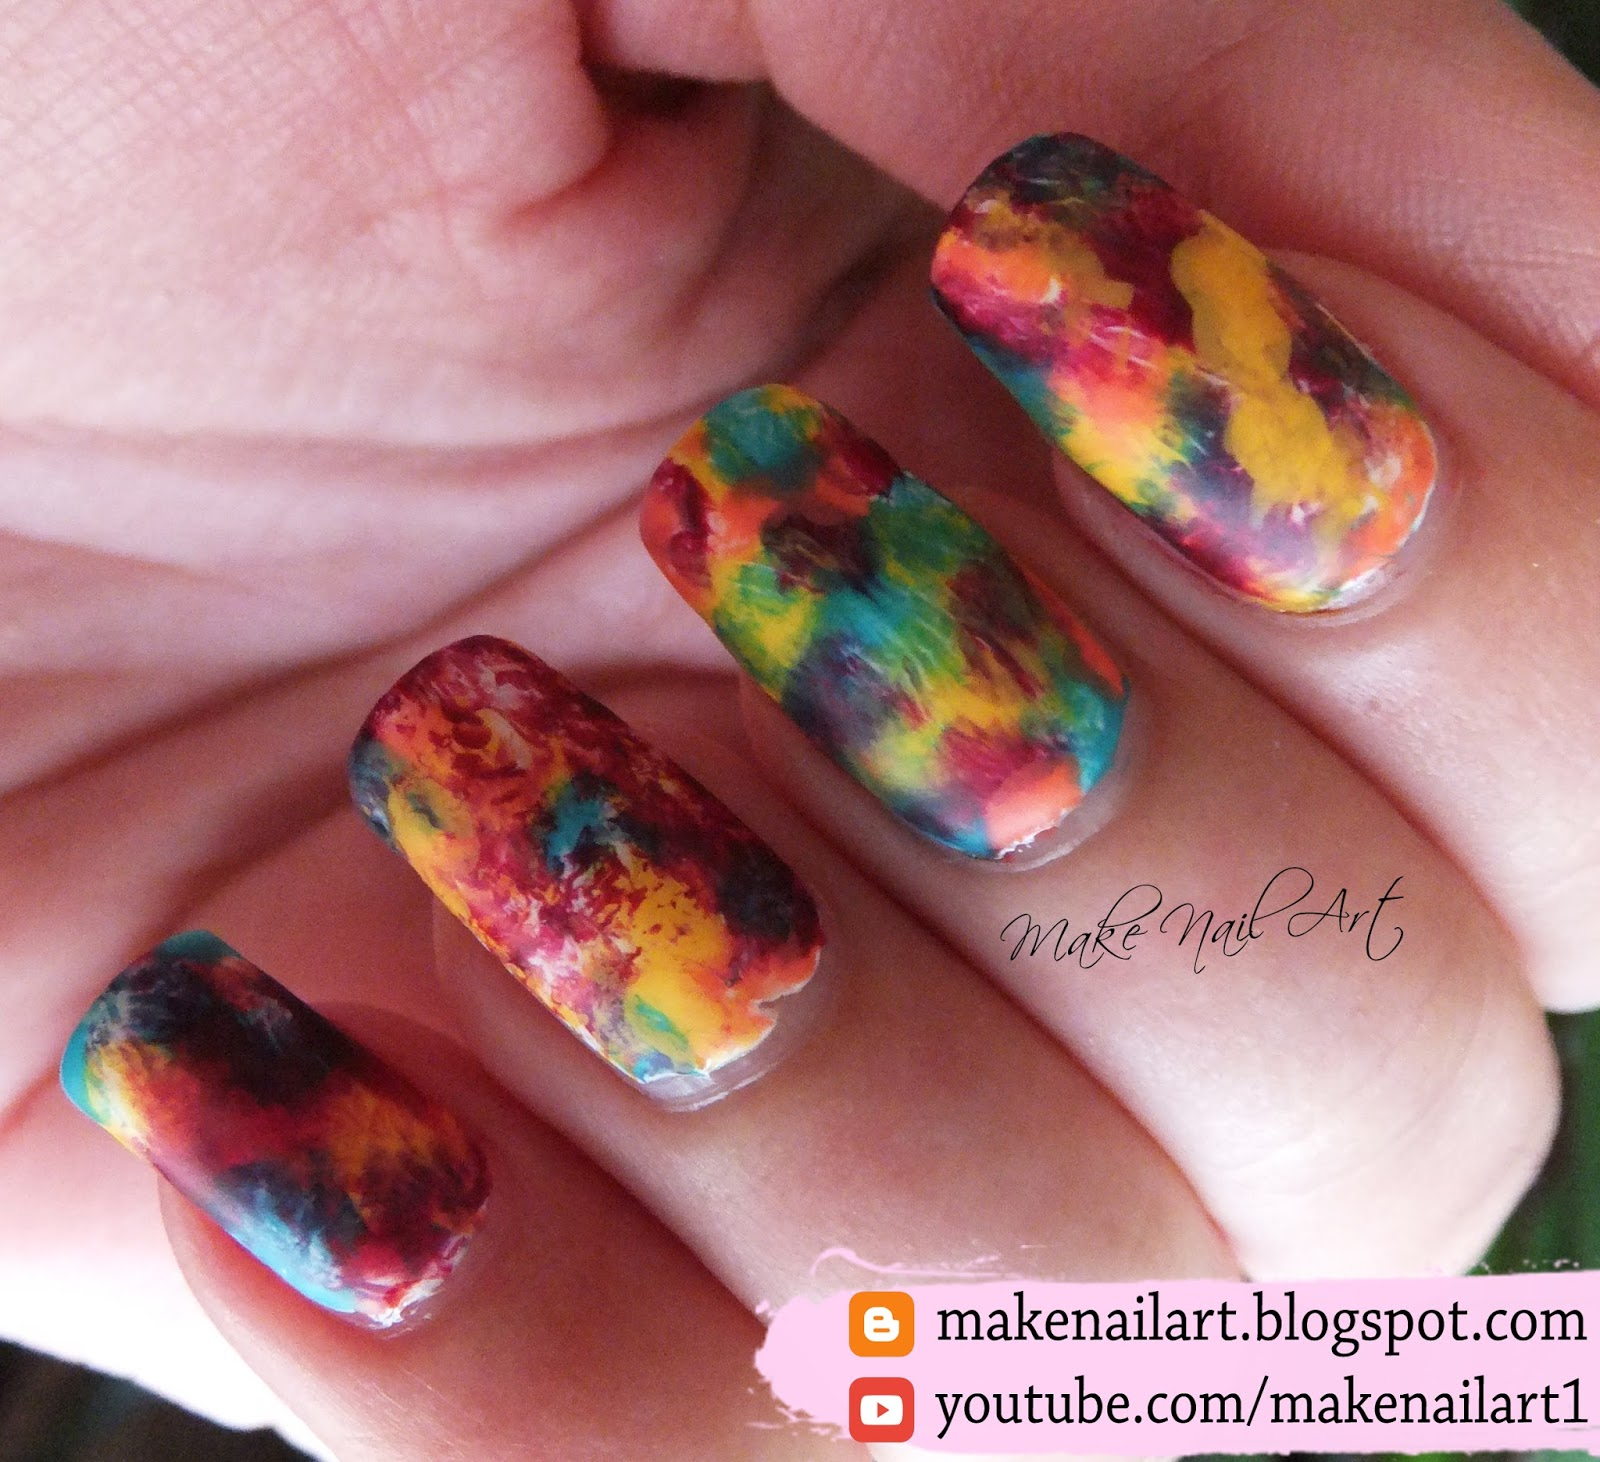 Make Nail Art: Easy Autumn Nail Art Design Tutorial